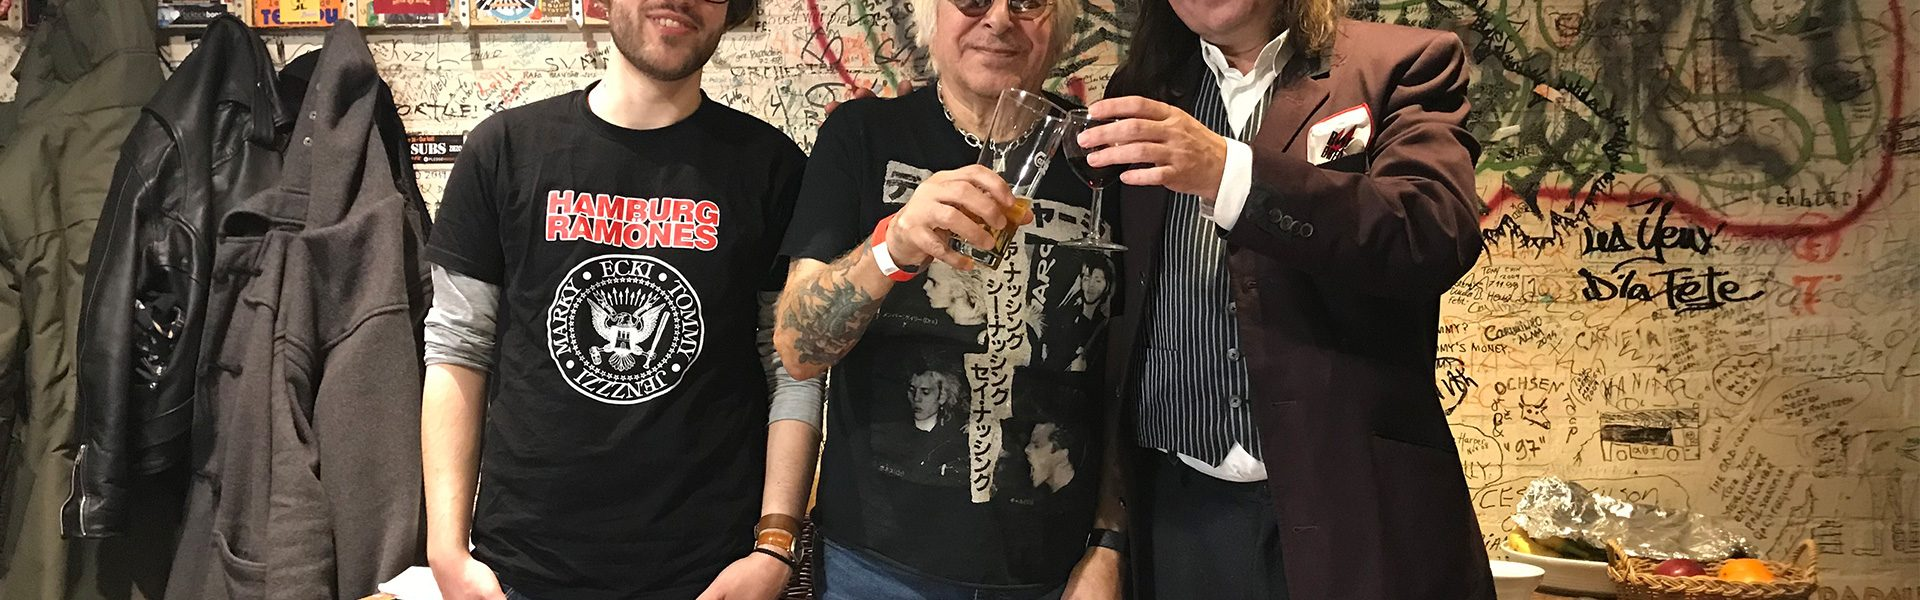 Charlie Harper (UK Subs) Interview on Radio Brennt!